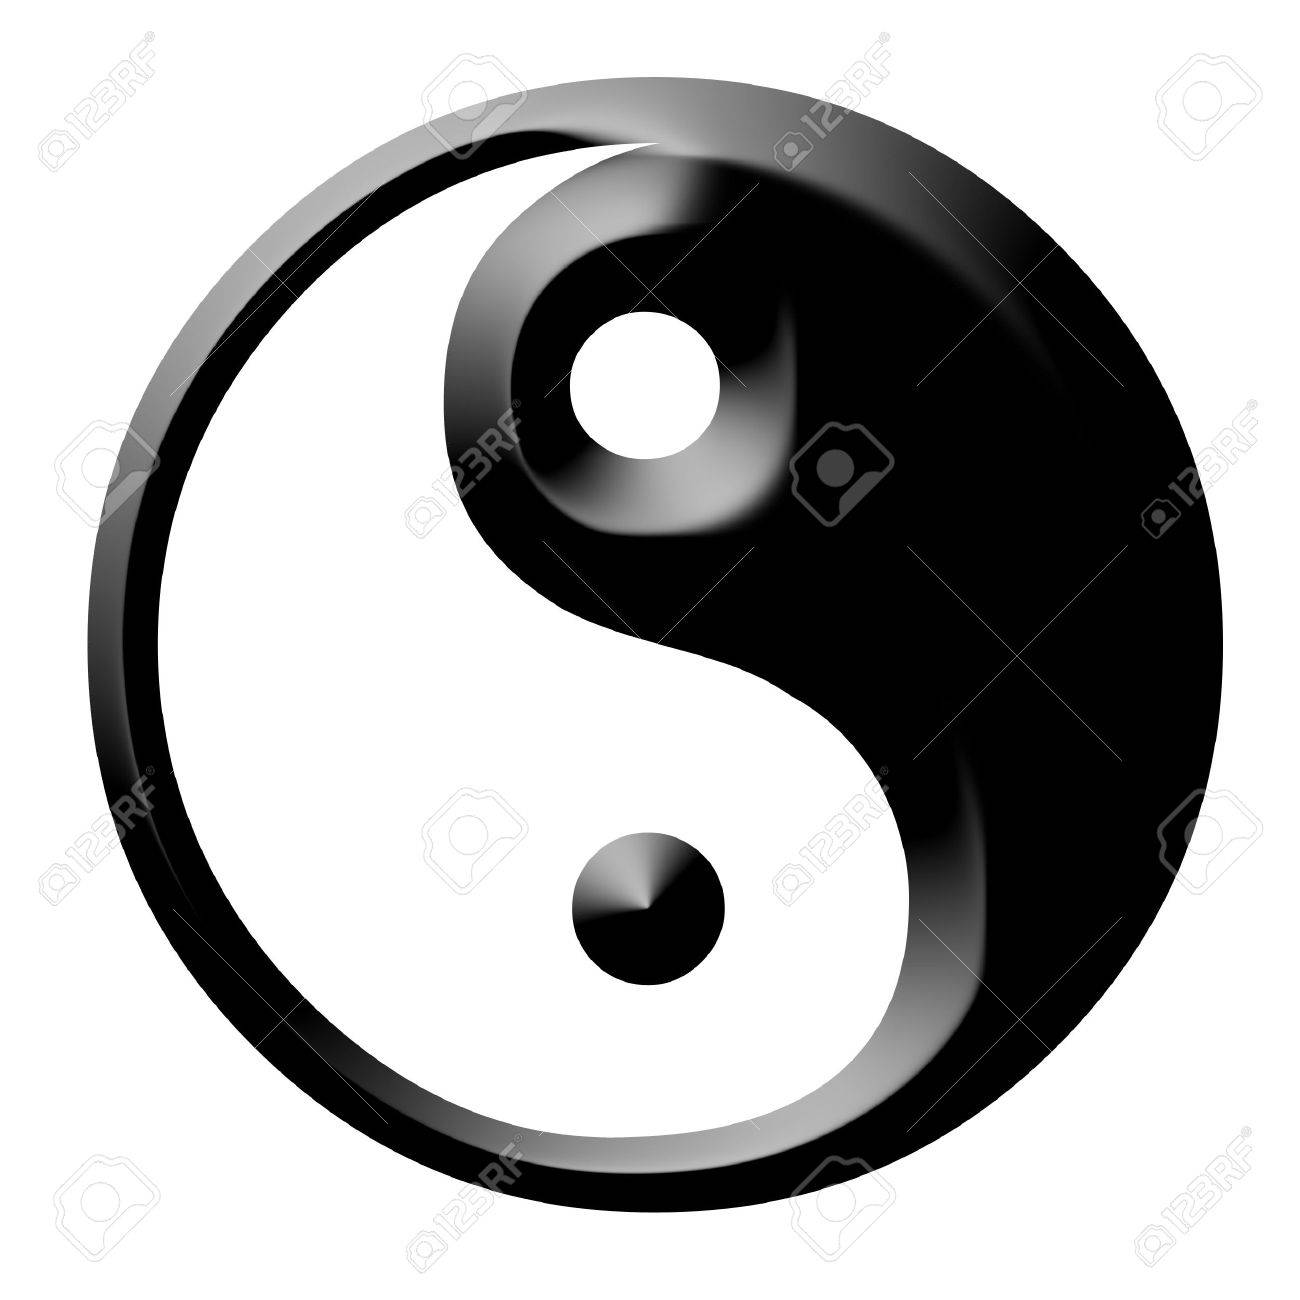 Dual Concepts Of Yin And Yang Describes Two Primal Opposing But Complementary Cosmic Forces Stock Photo - 2689241